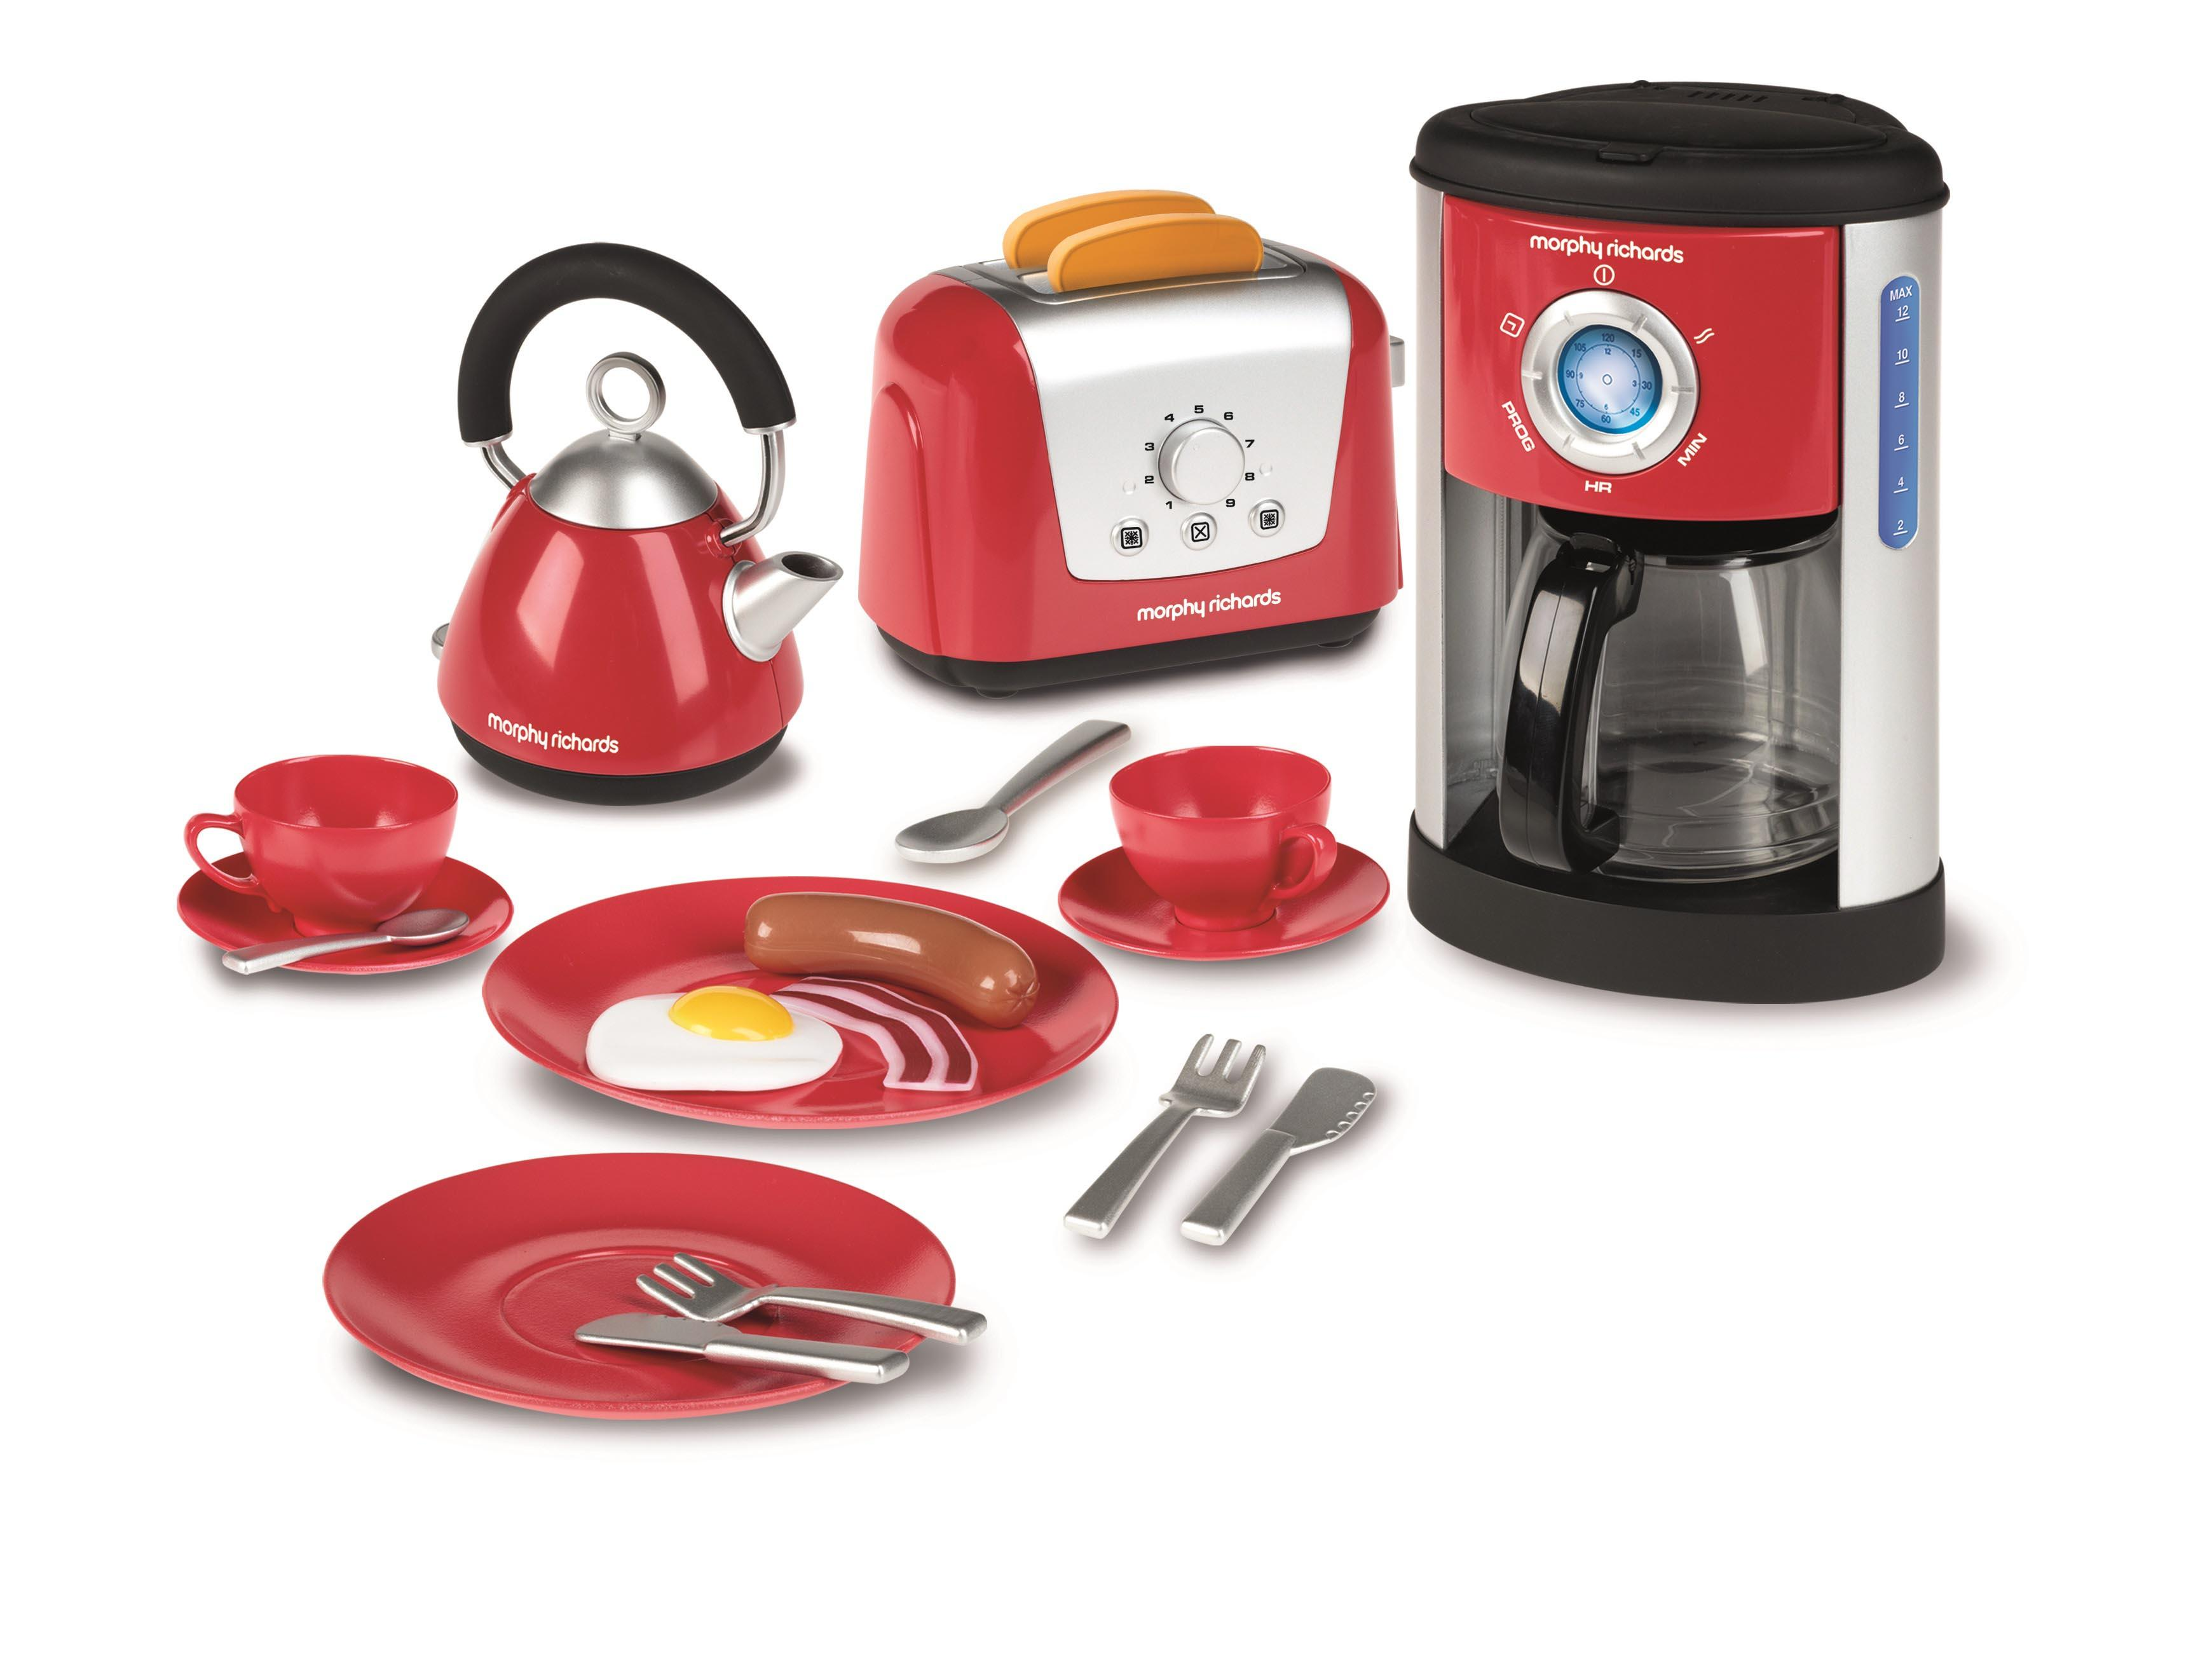 Amazon Casdon Little Cook Morphy Richards Kitchen Set Toys